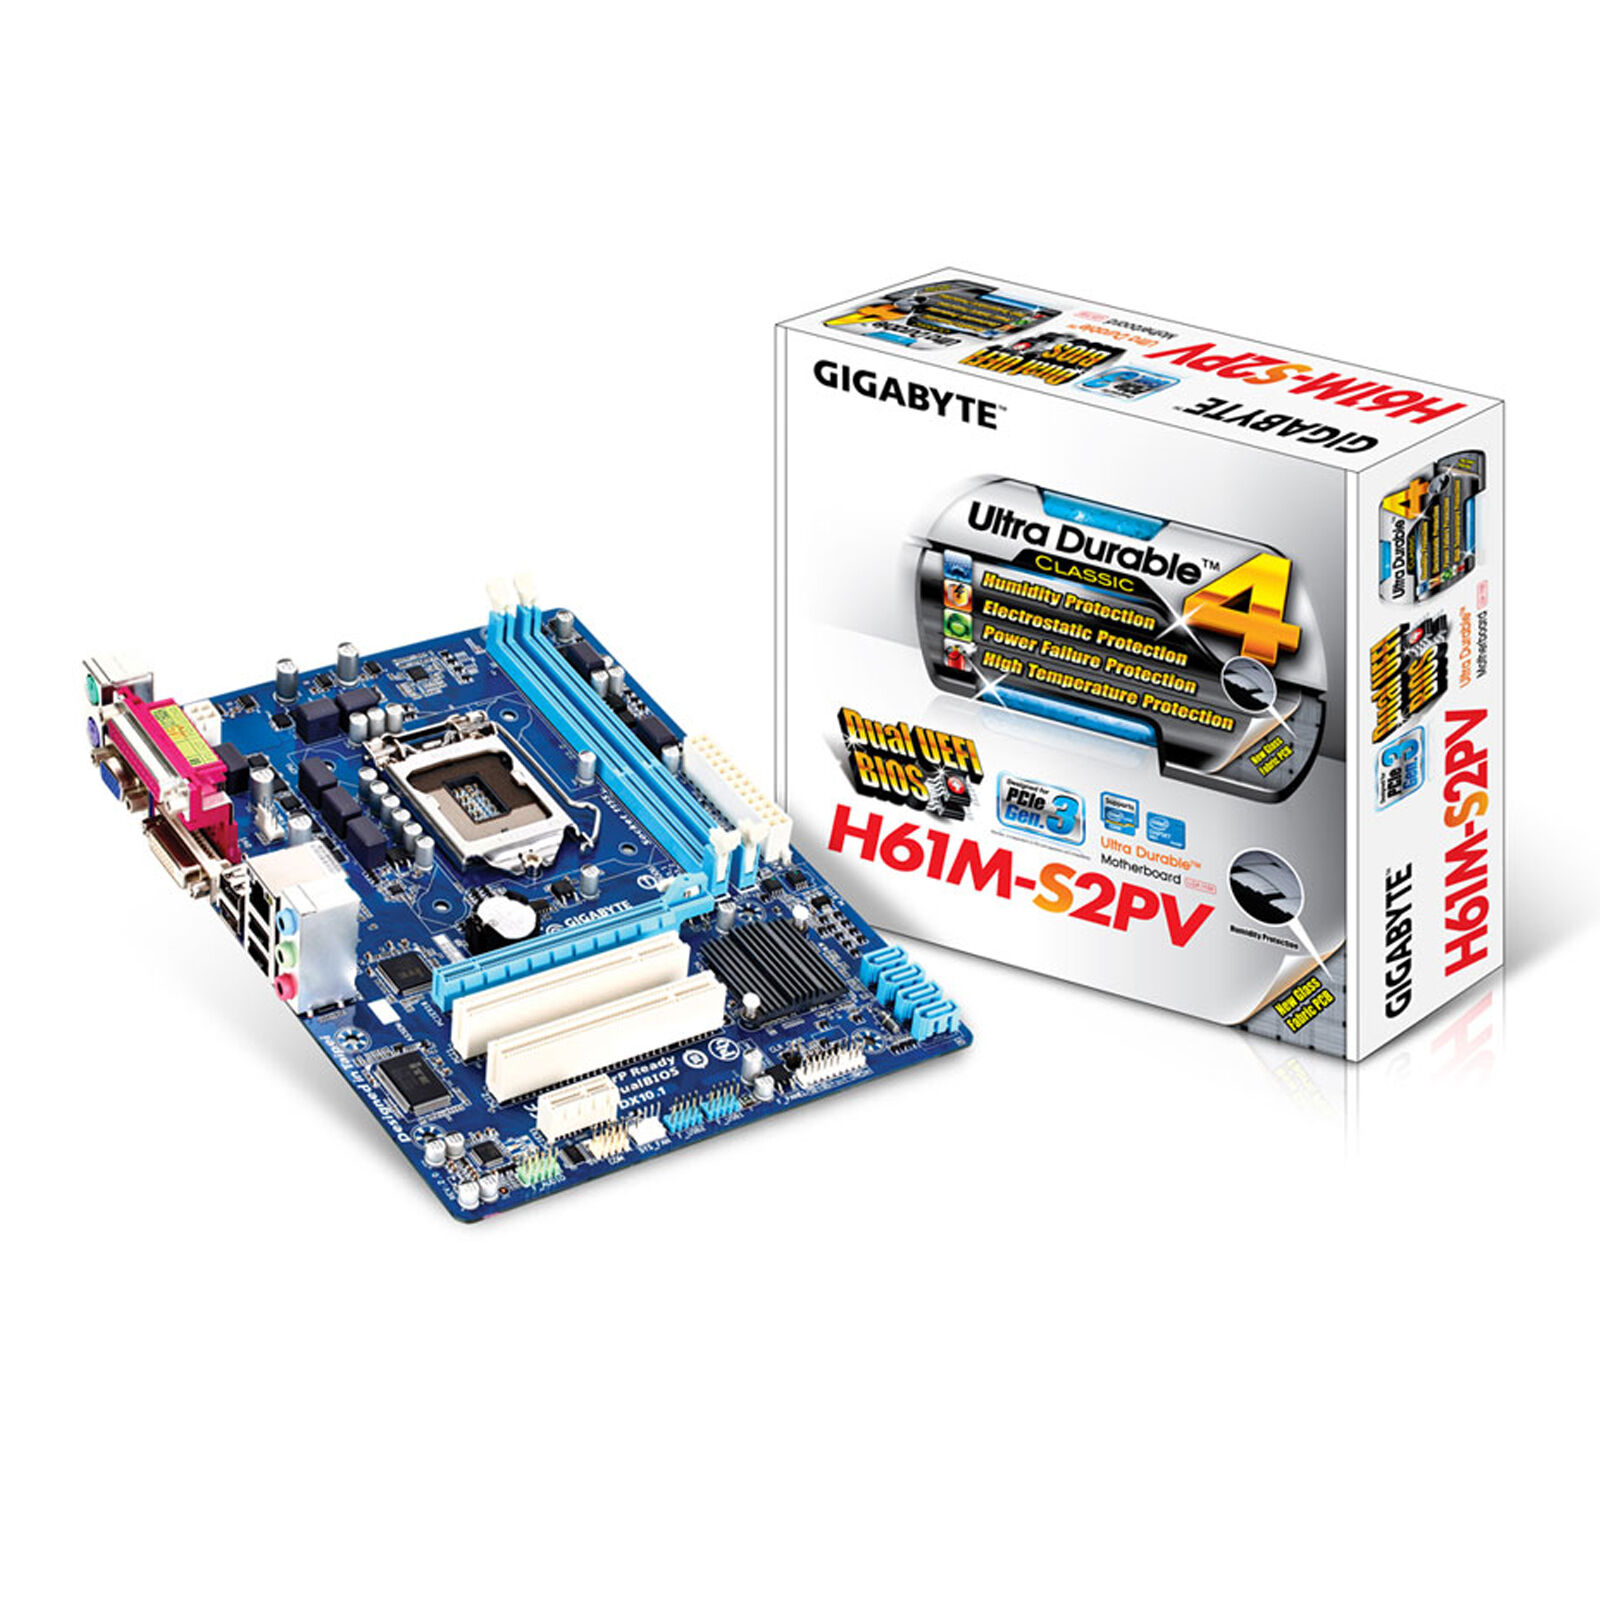 Core 2 Quad Motherboard